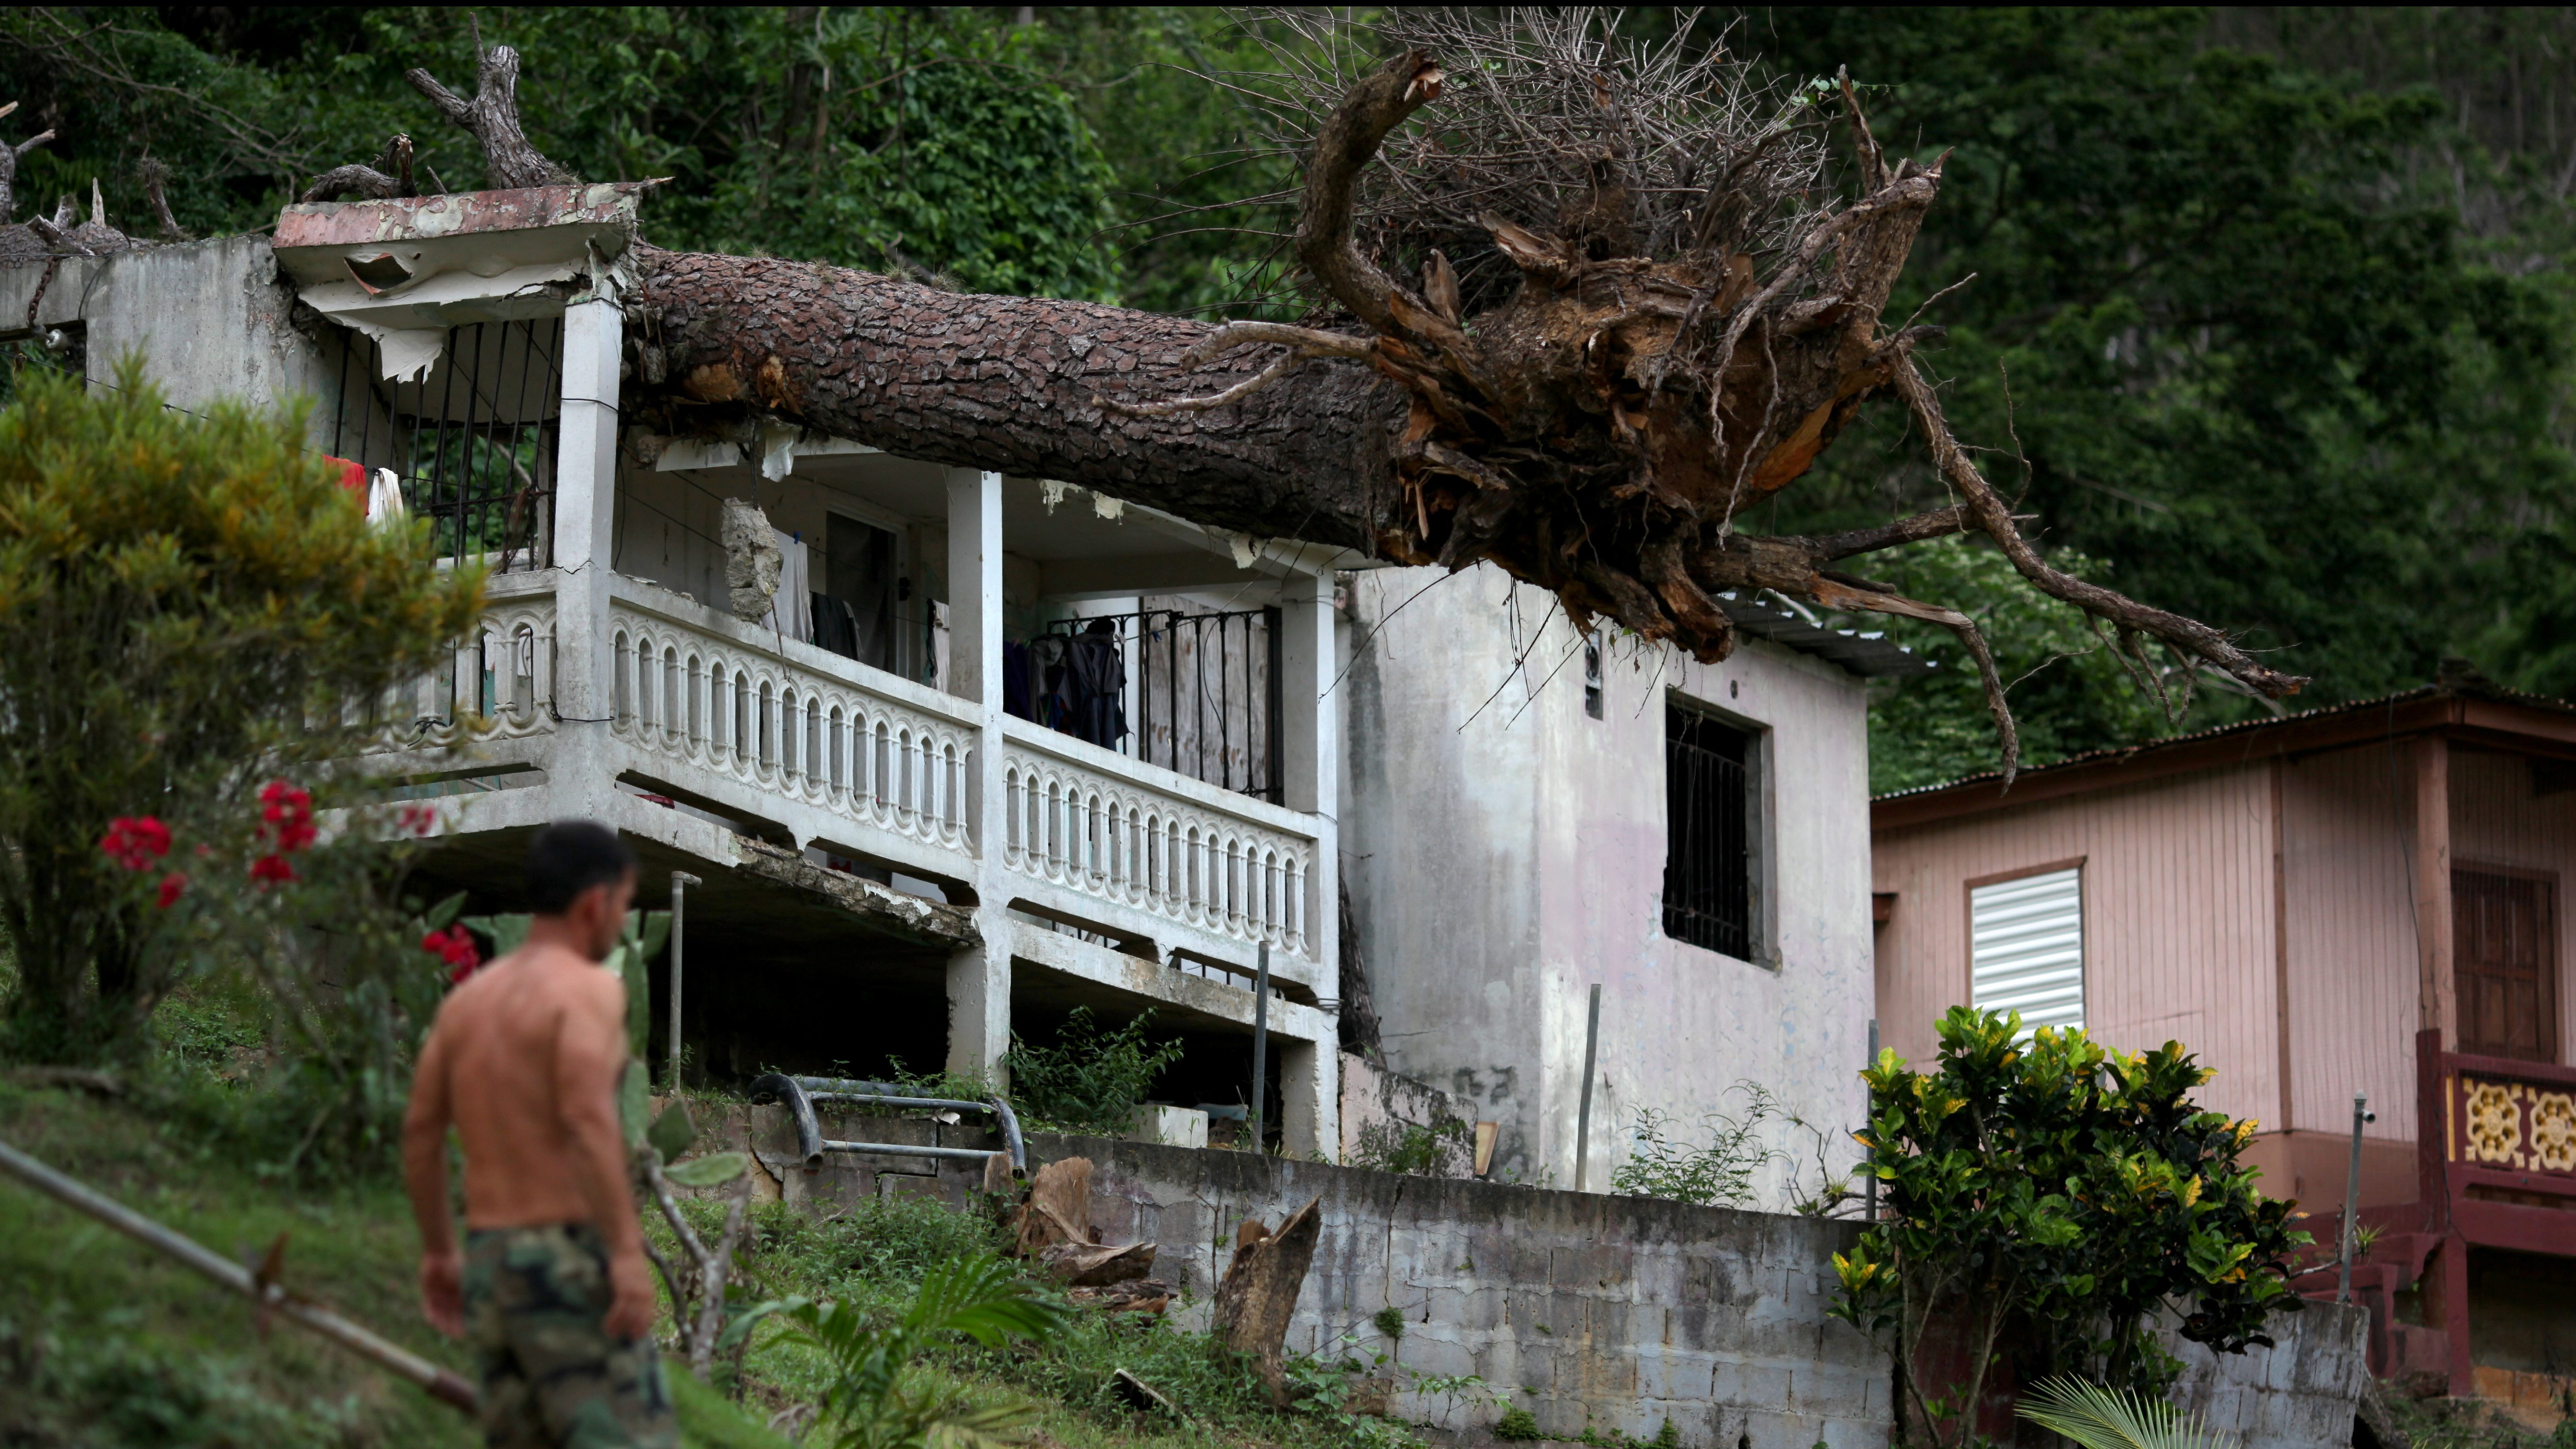 a house destroyed by hurricane maria in puerto rico